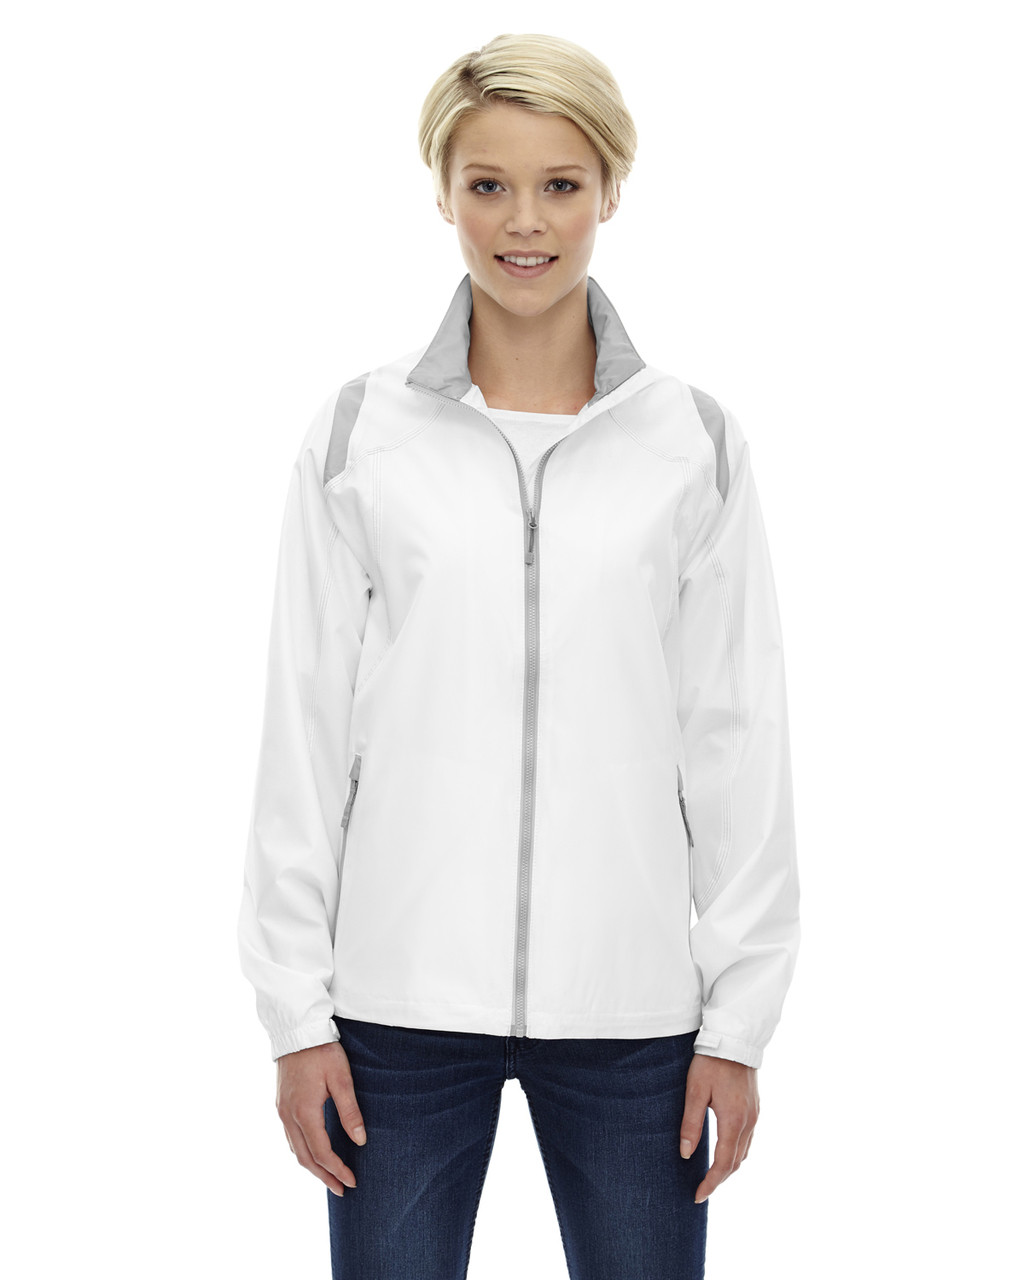 White - 78076 North Ladies' Lightweight Colour-Block Jacket | Blankclothing.ca